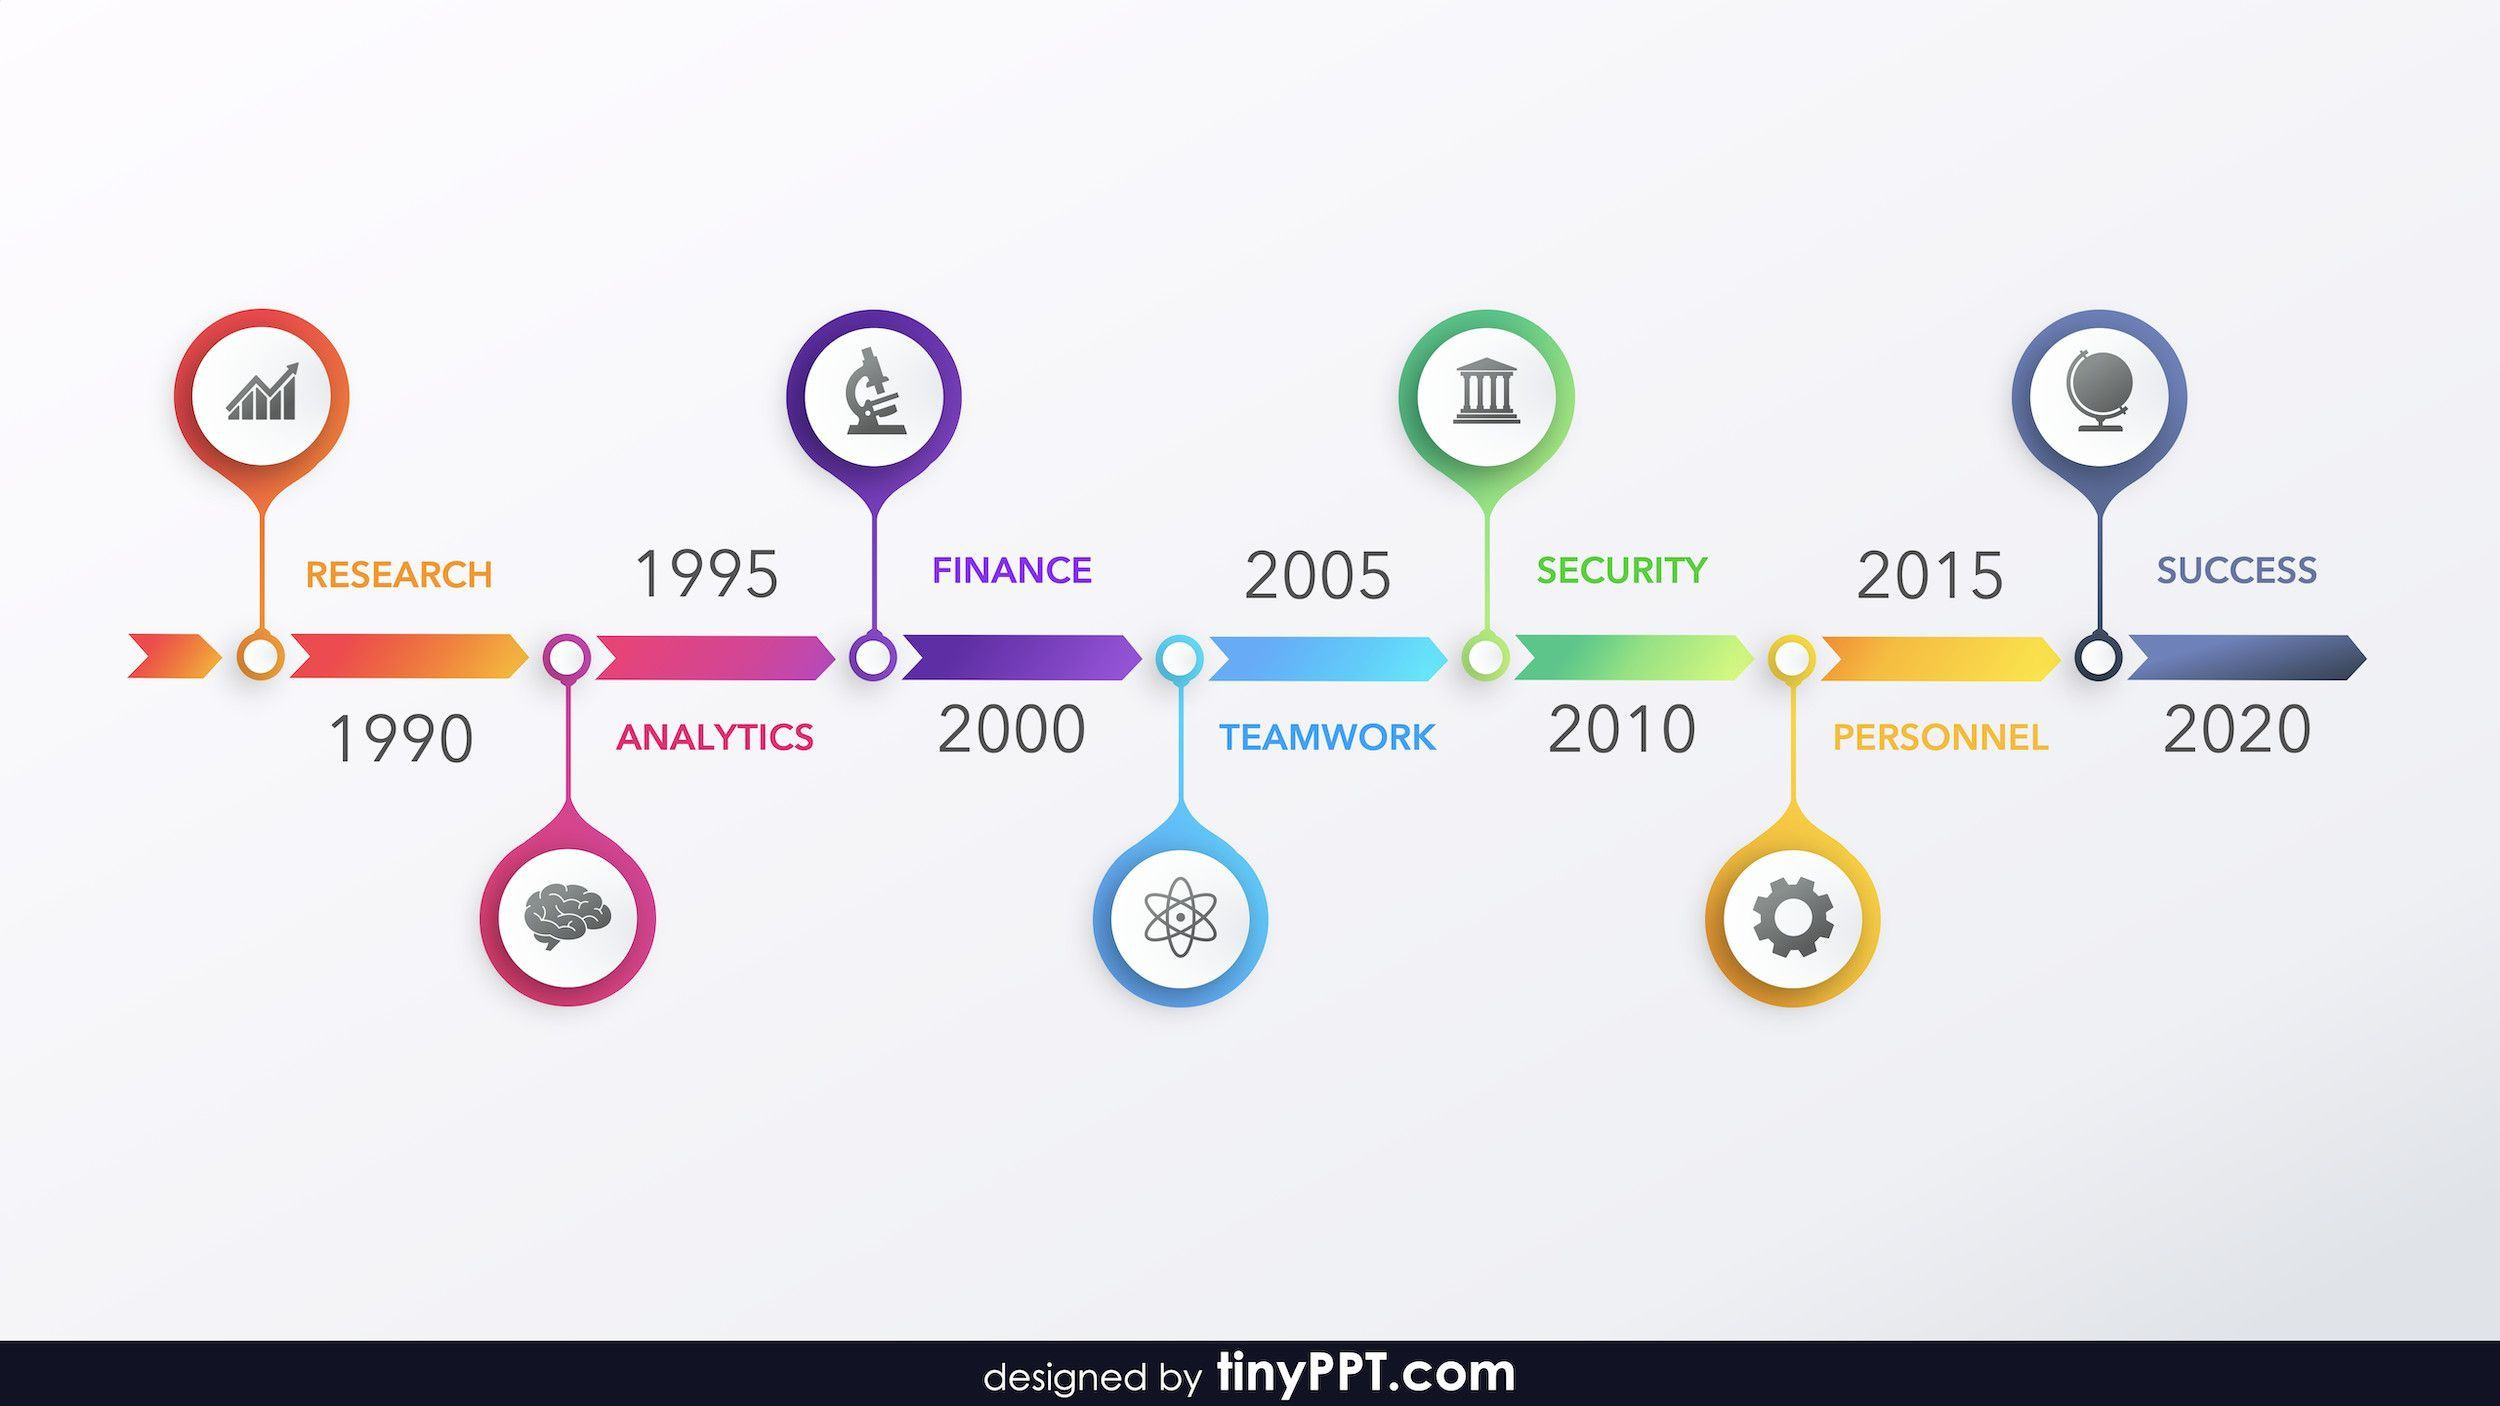 003 Shocking Timeline Template For Ppt Free Highest Quality  Infographic Vertical DownloadFull